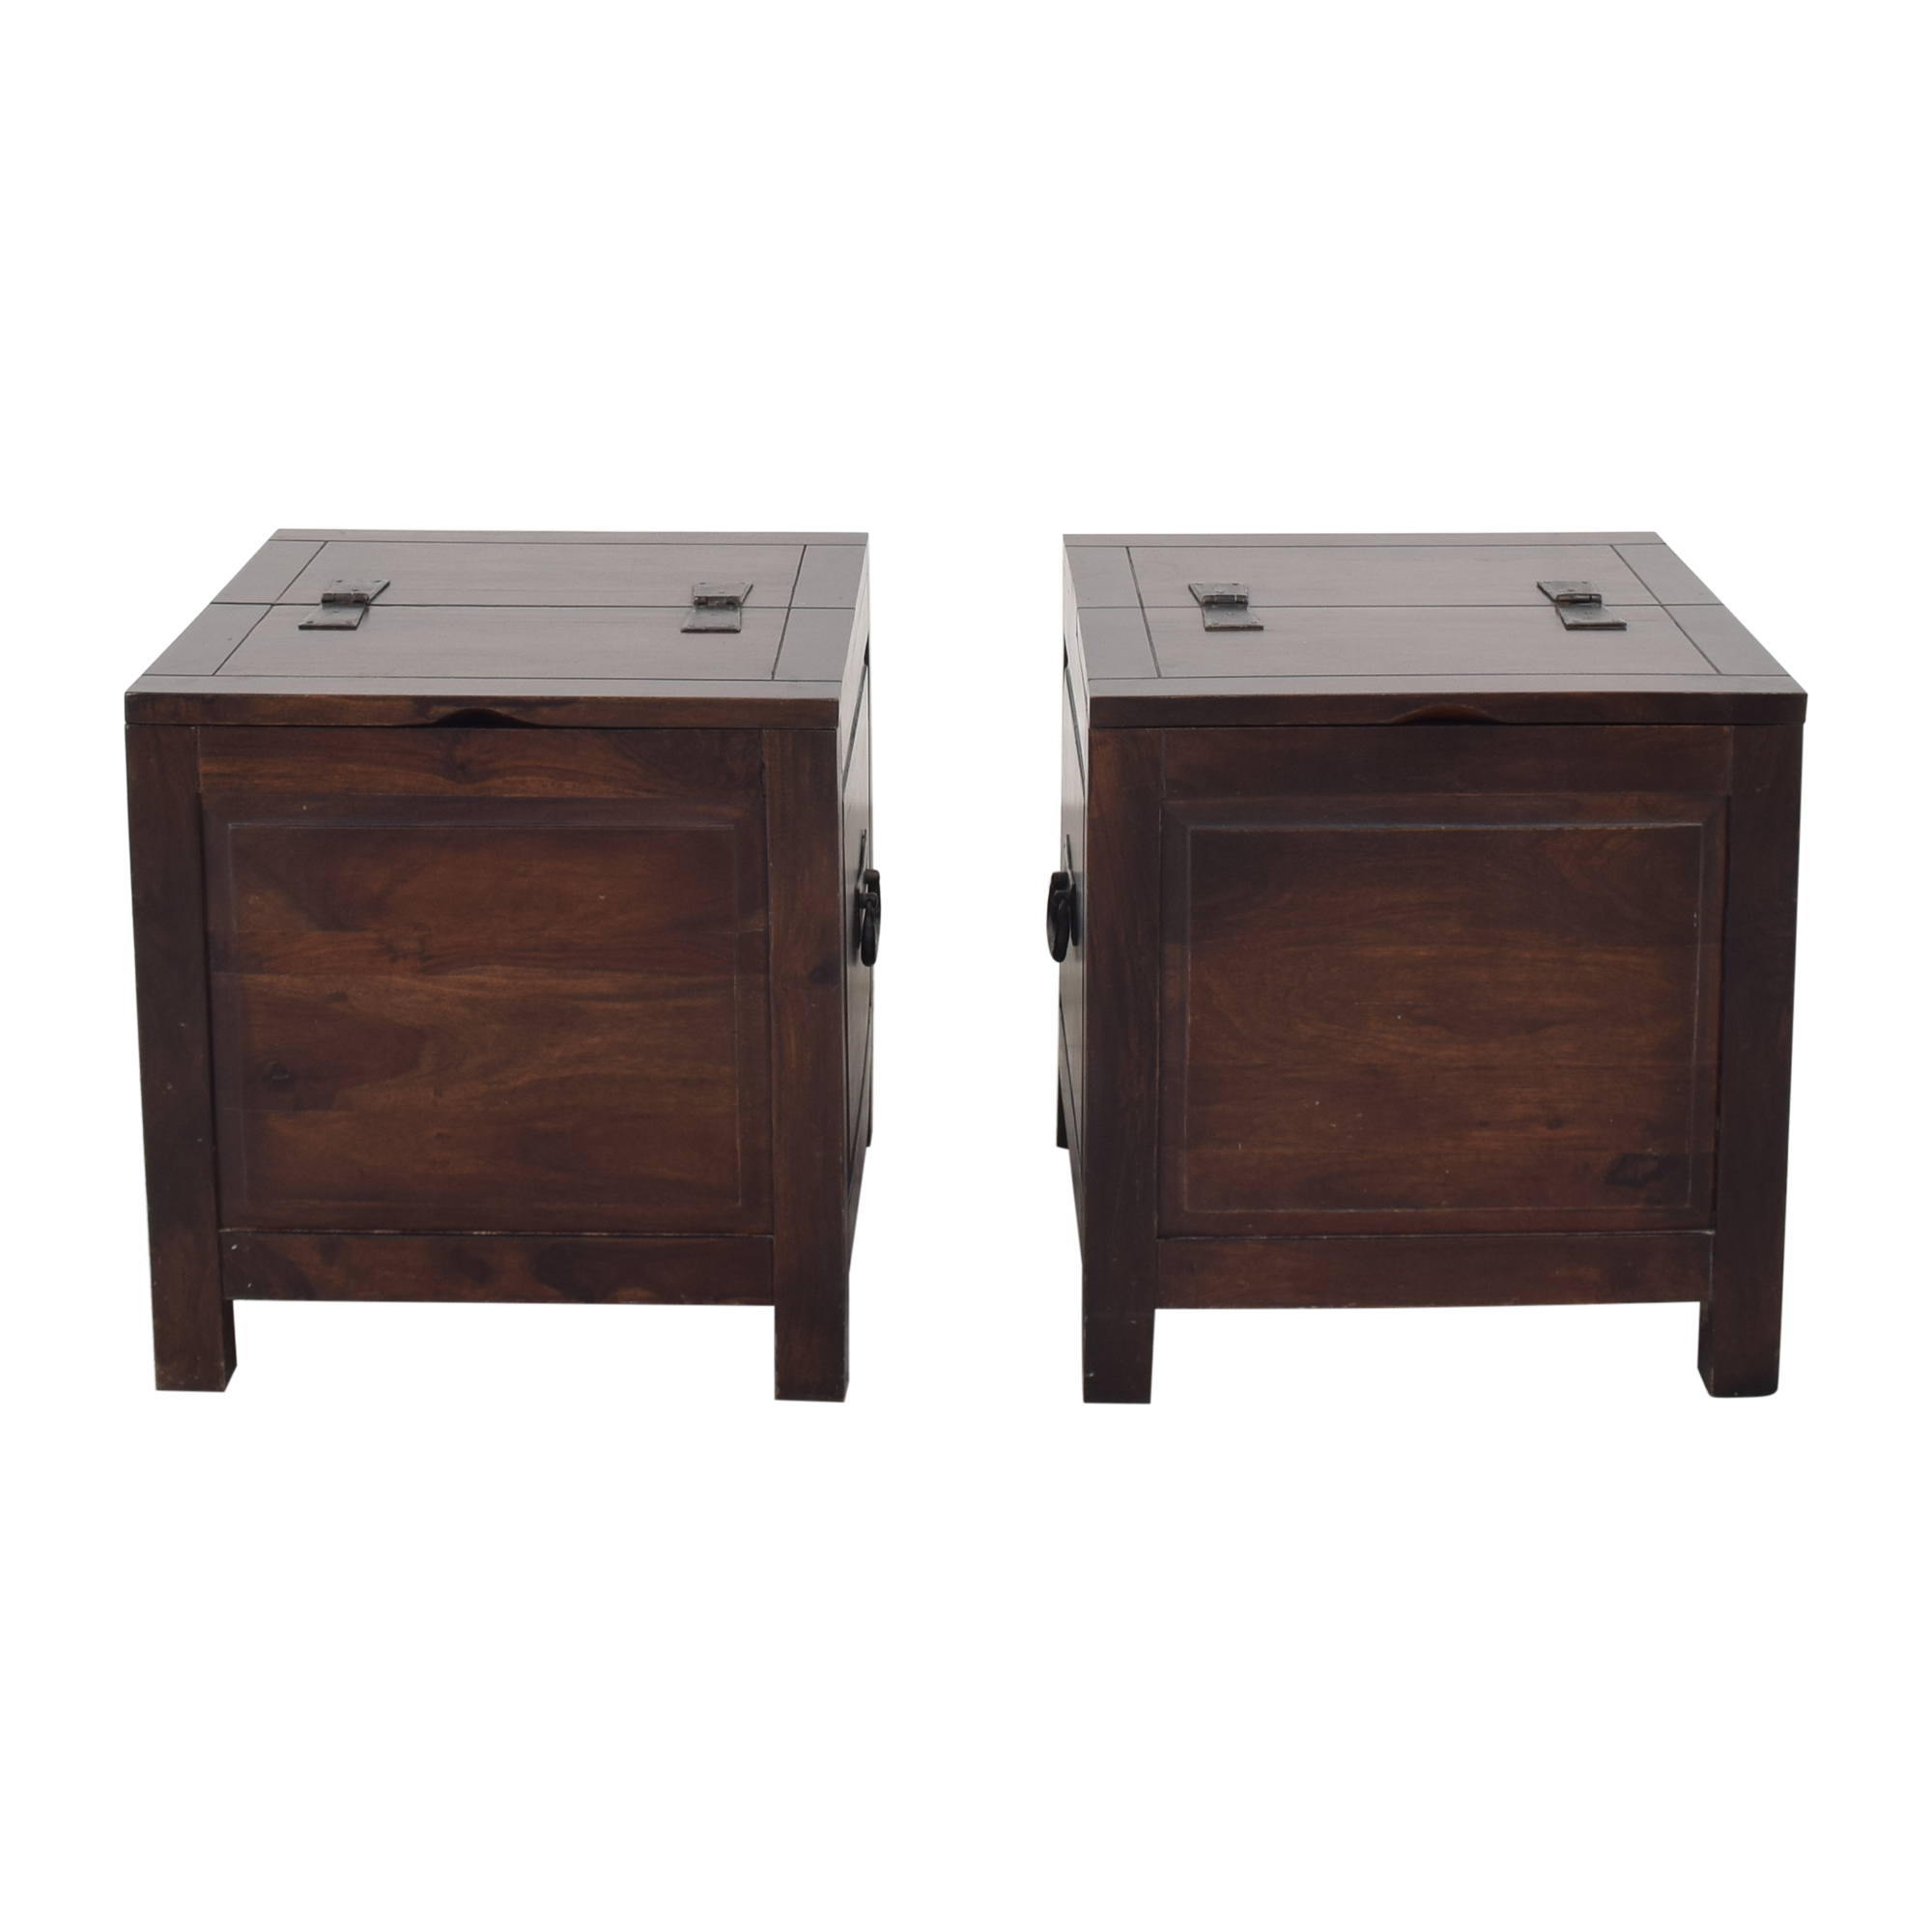 Crate & Barrel Crate & Barrel Hunter Side Trunks for sale